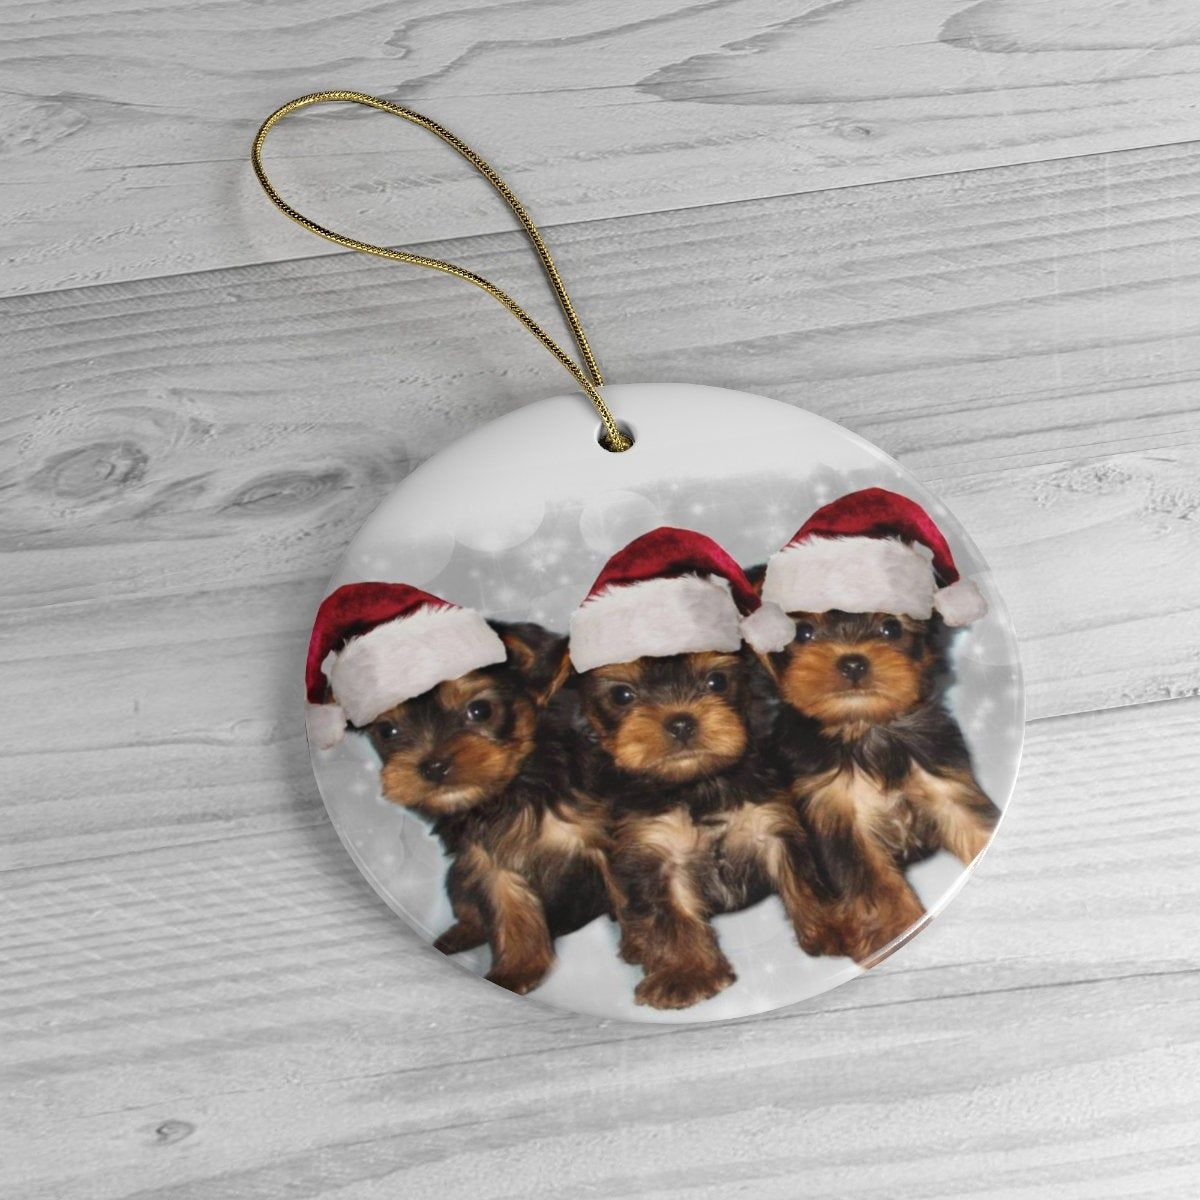 Christmas Yorkshire Terrier Puppies Heirloom Ceramic Ornament Christmas Holiday Dog Yorkshire Terrier Puppies Christmas Ornaments To Make Yorkshire Terrier